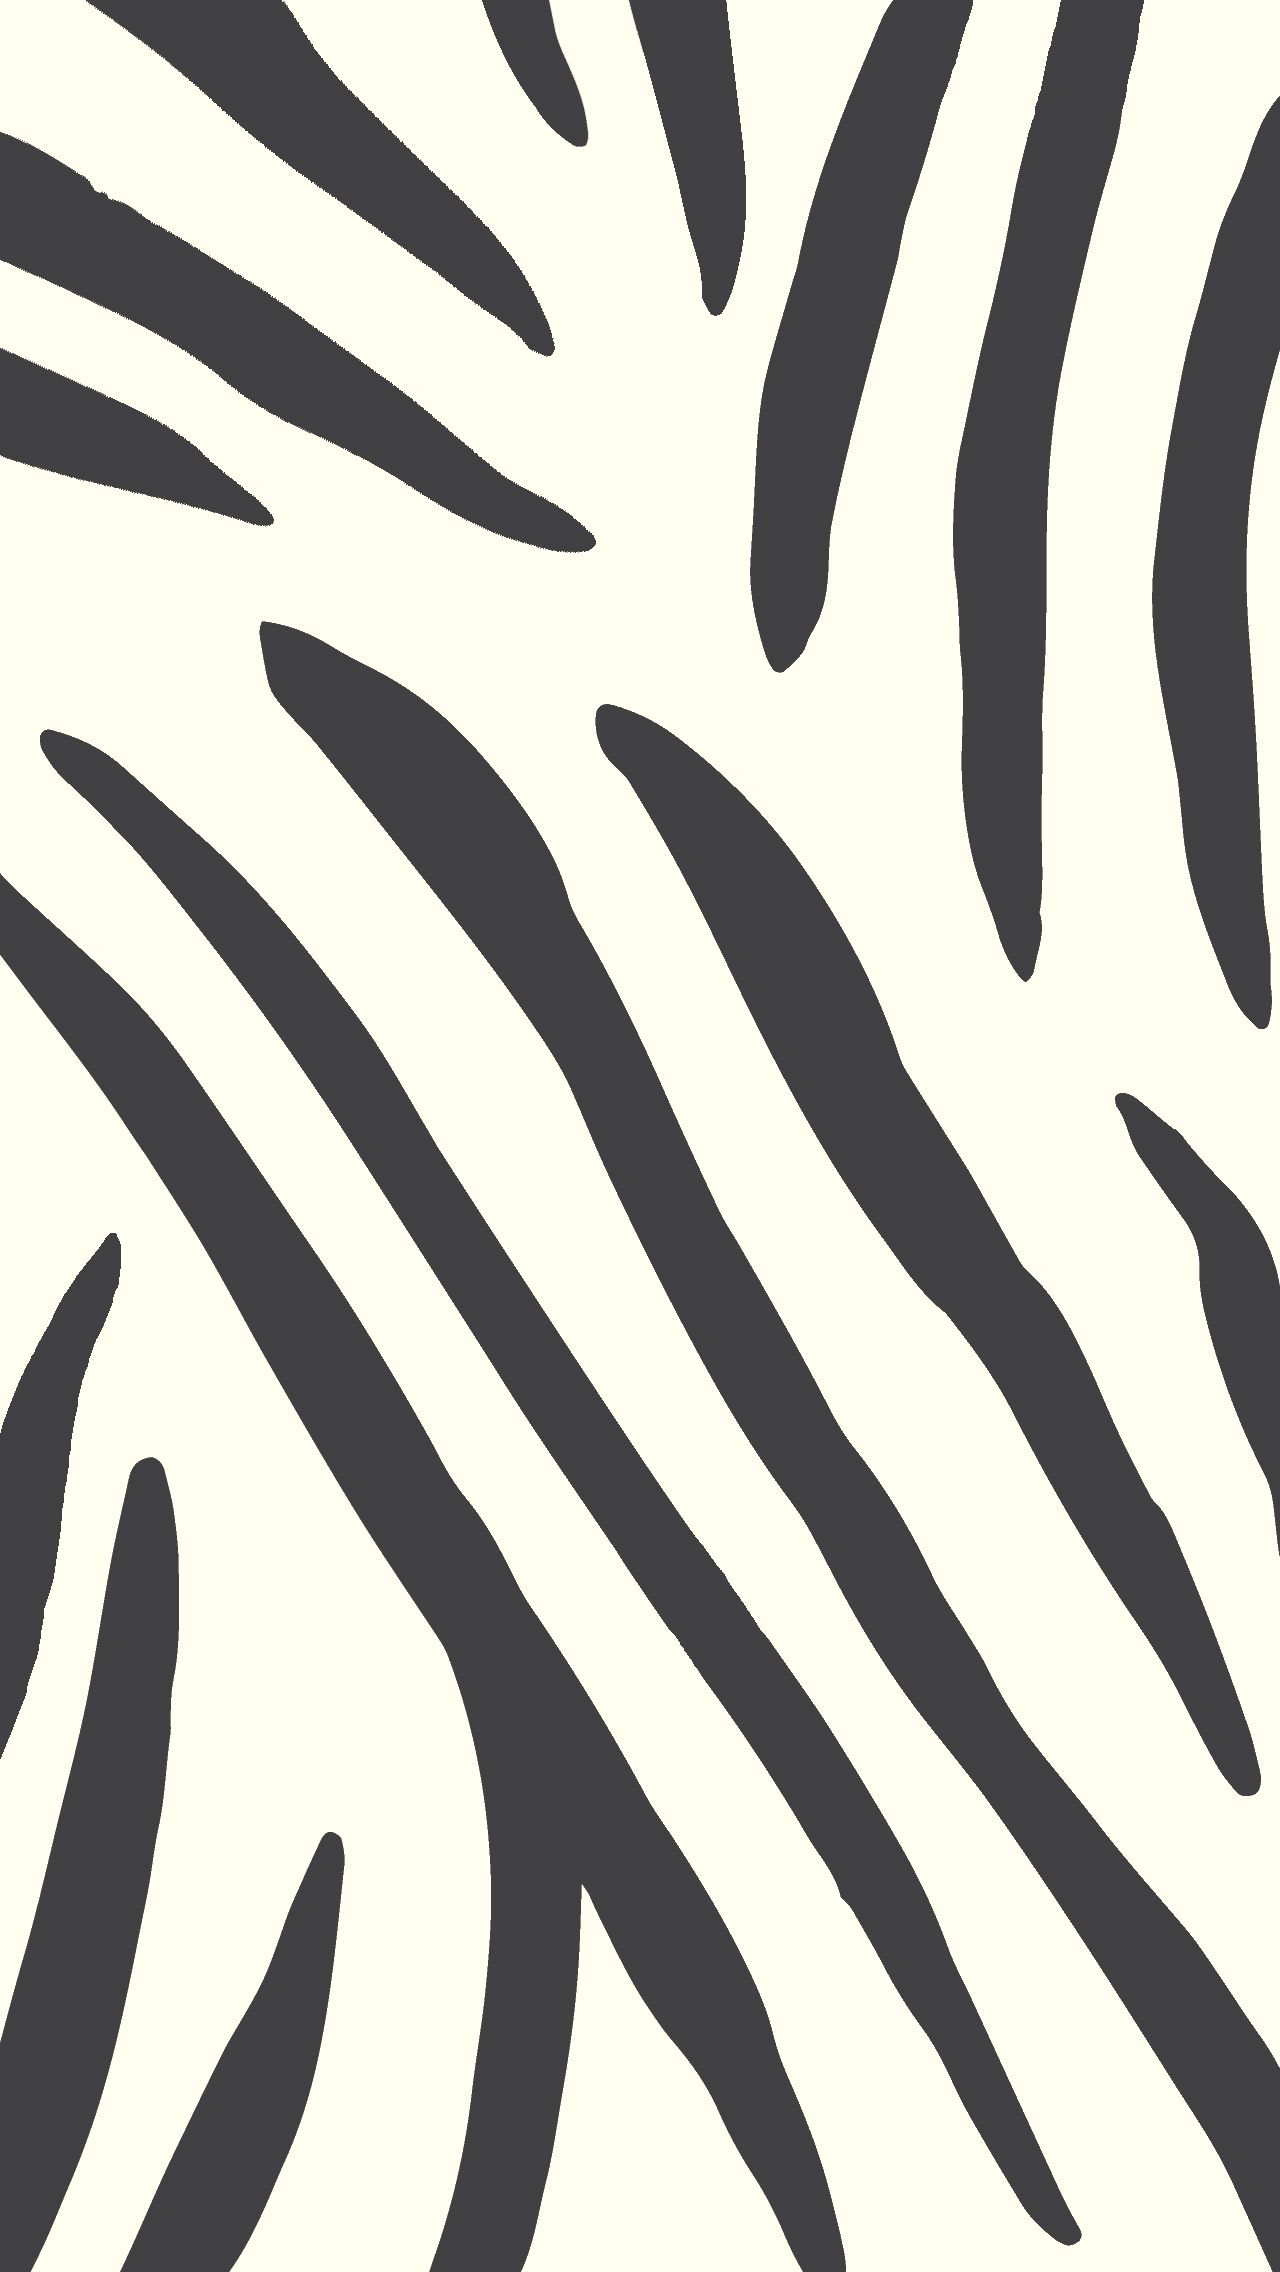 ᴮᵞᵛᴵ ᵞᴼᵁ Animal Print Wallpaper Zebra Print Wallpaper Animal Print Background